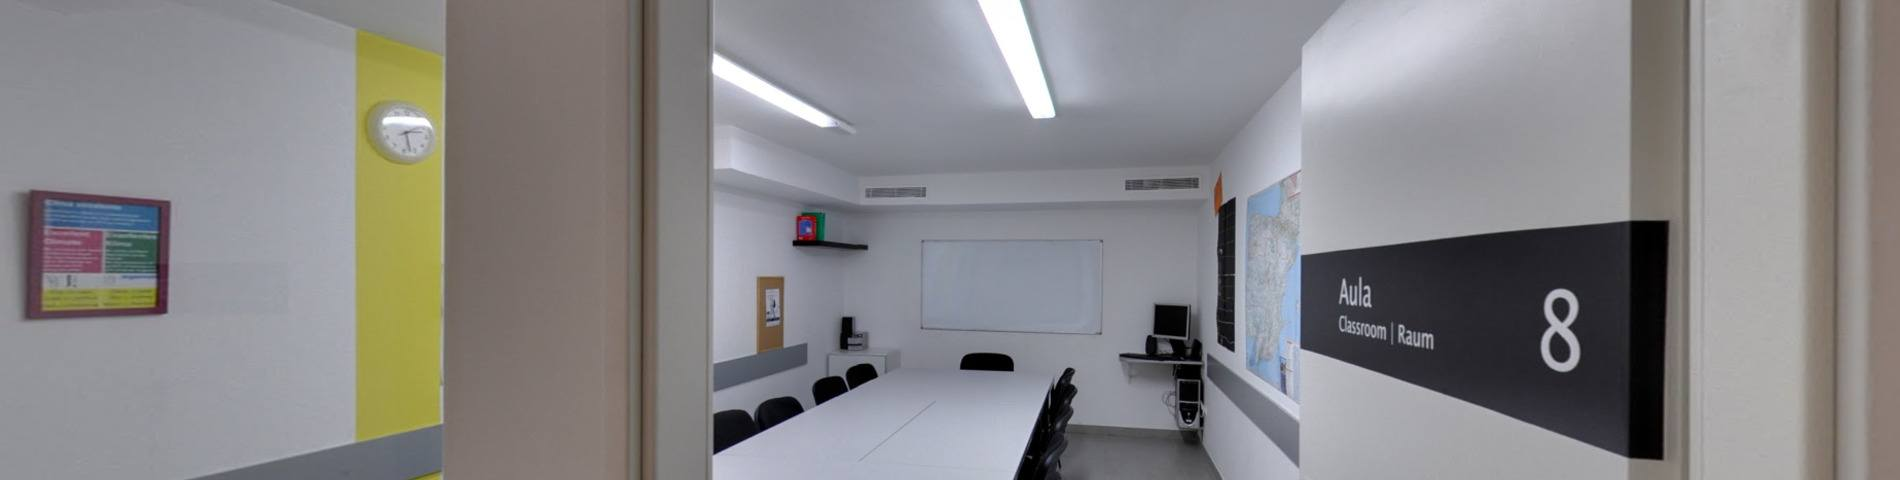 Instituto de Idiomas Ibiza immagine 1